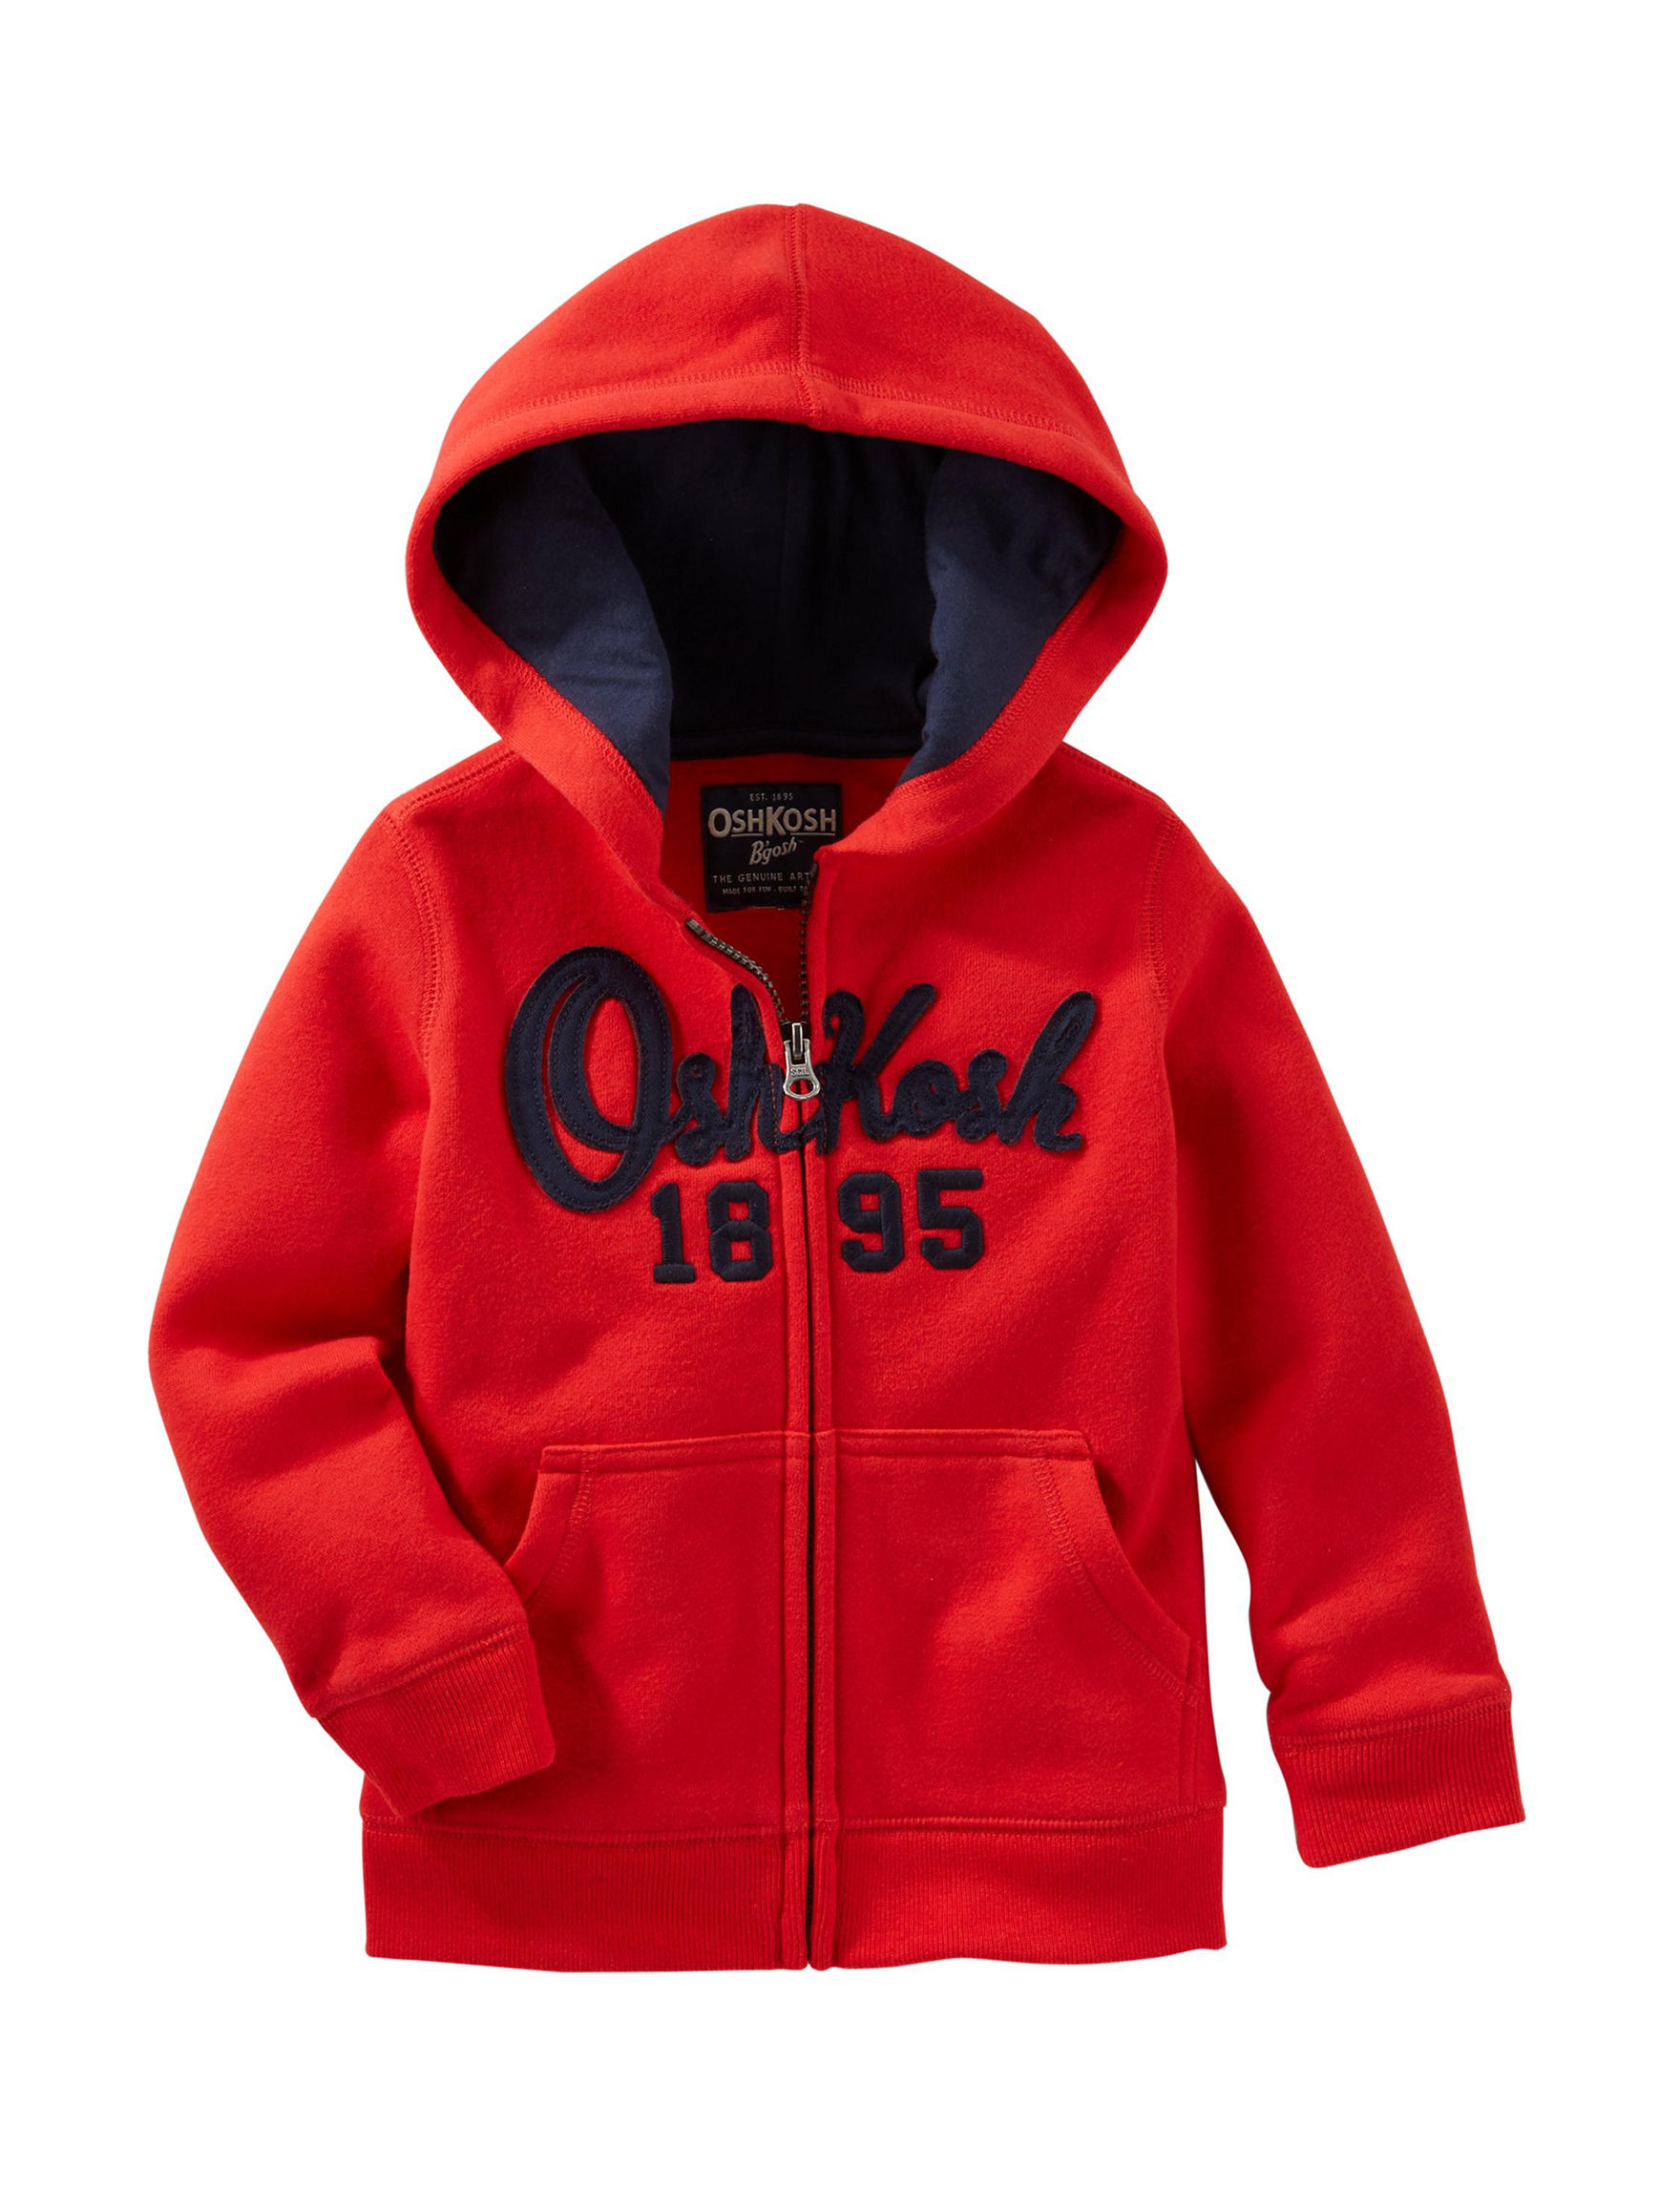 Oshkosh B'Gosh Red Lightweight Jackets & Blazers